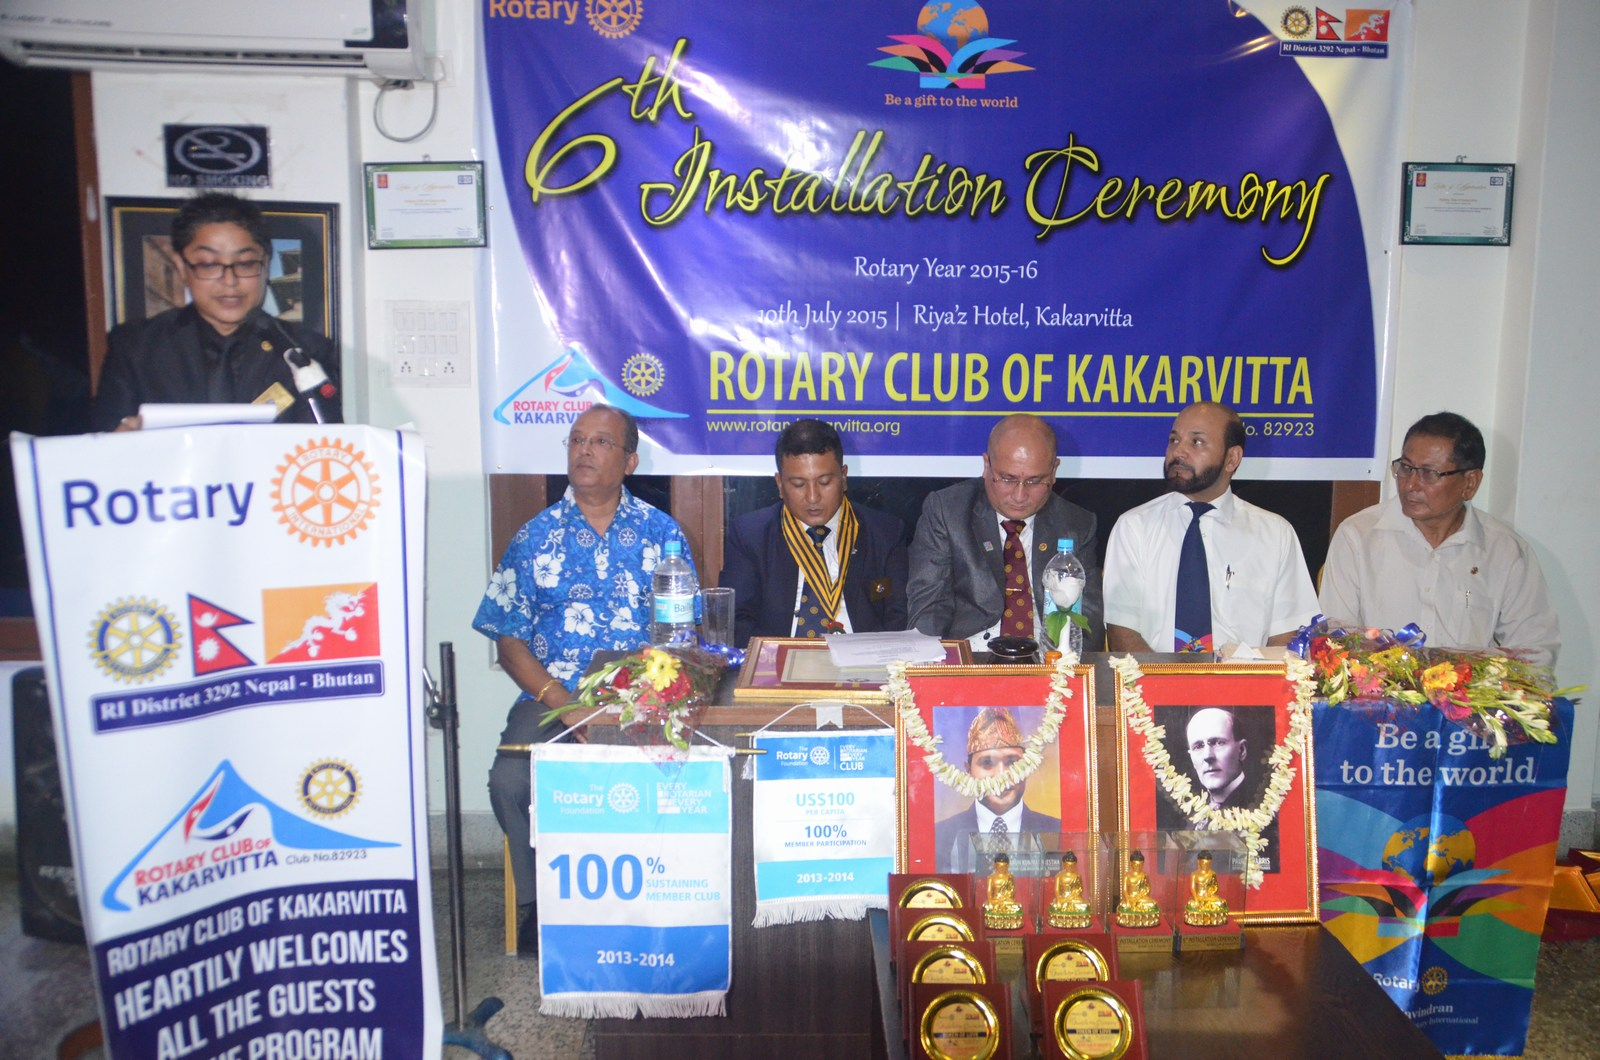 6th Installation Ceremony 2015 16 Rotary Club Of Kakarvitta 44